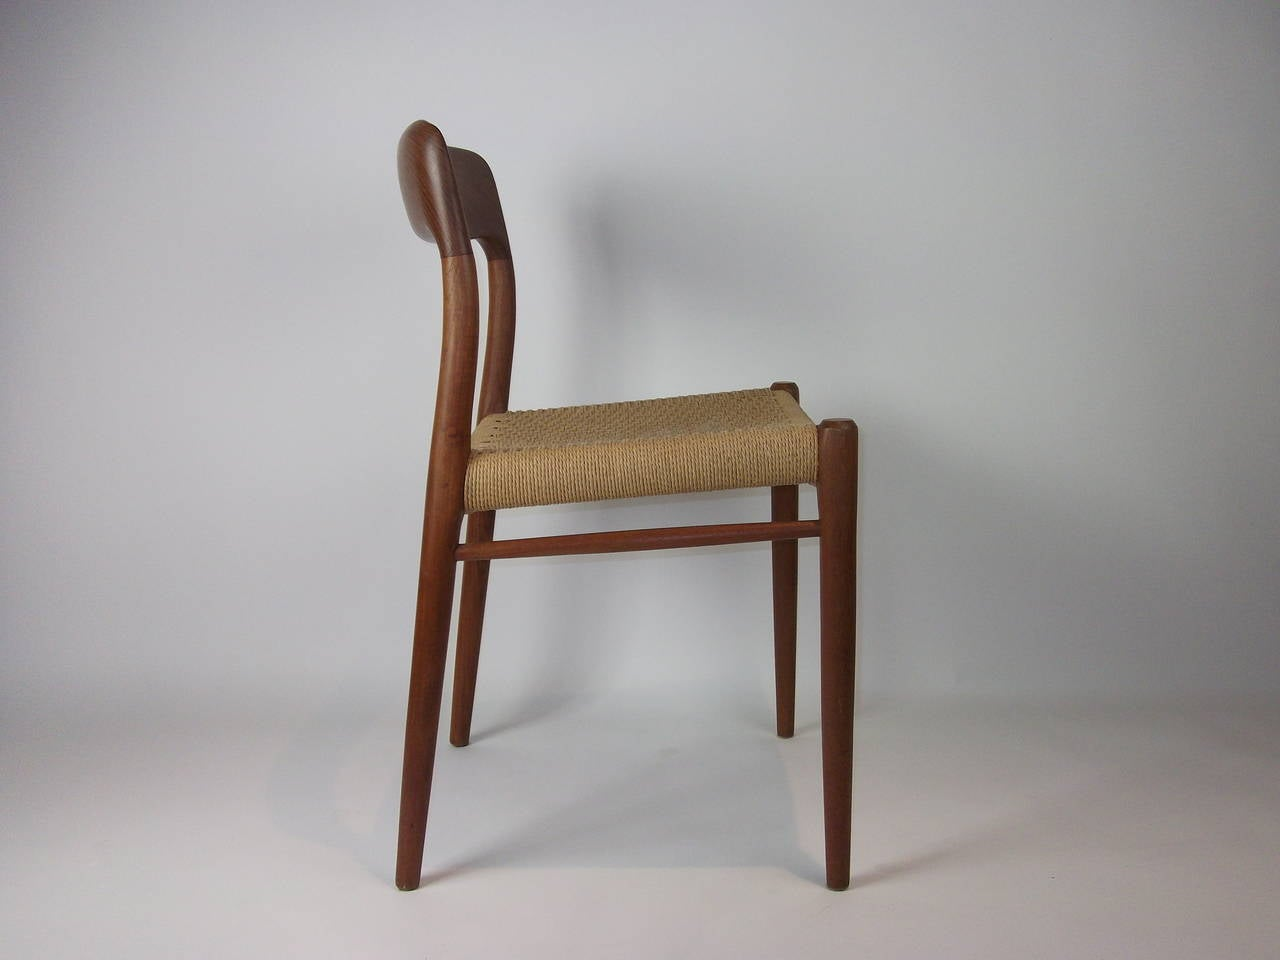 Vintage Danish Teak J L Moller Chair Model 75 At 1stdibs